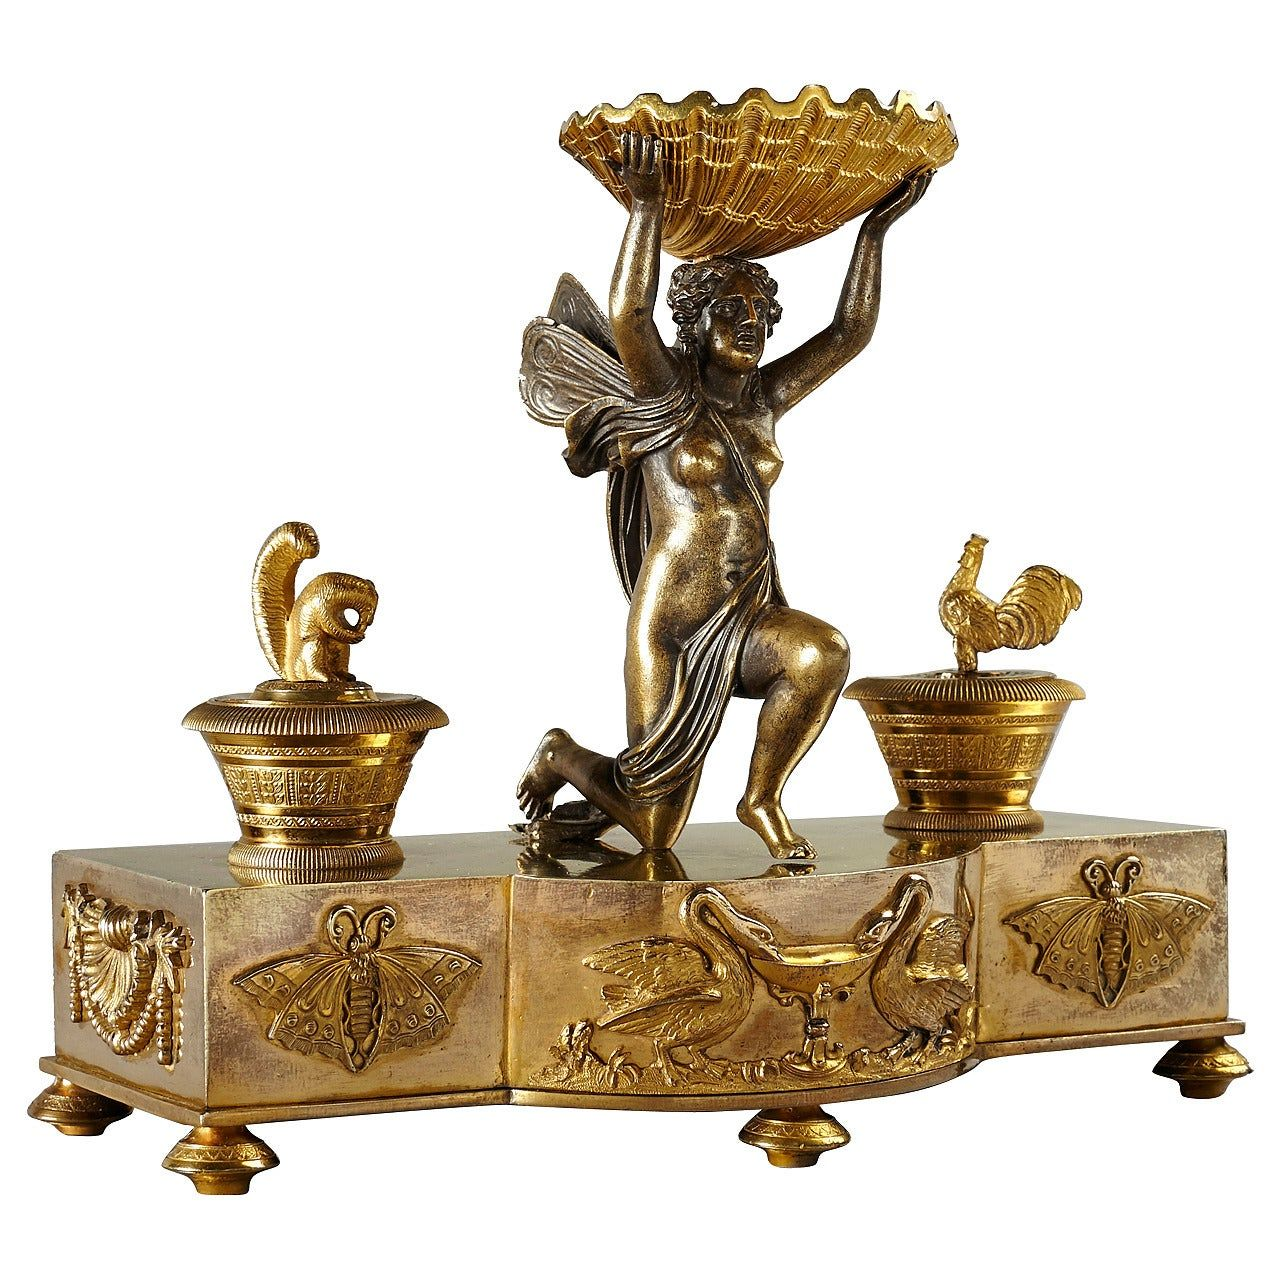 Fine Early 19th Century Empire Russian Inkstand, St